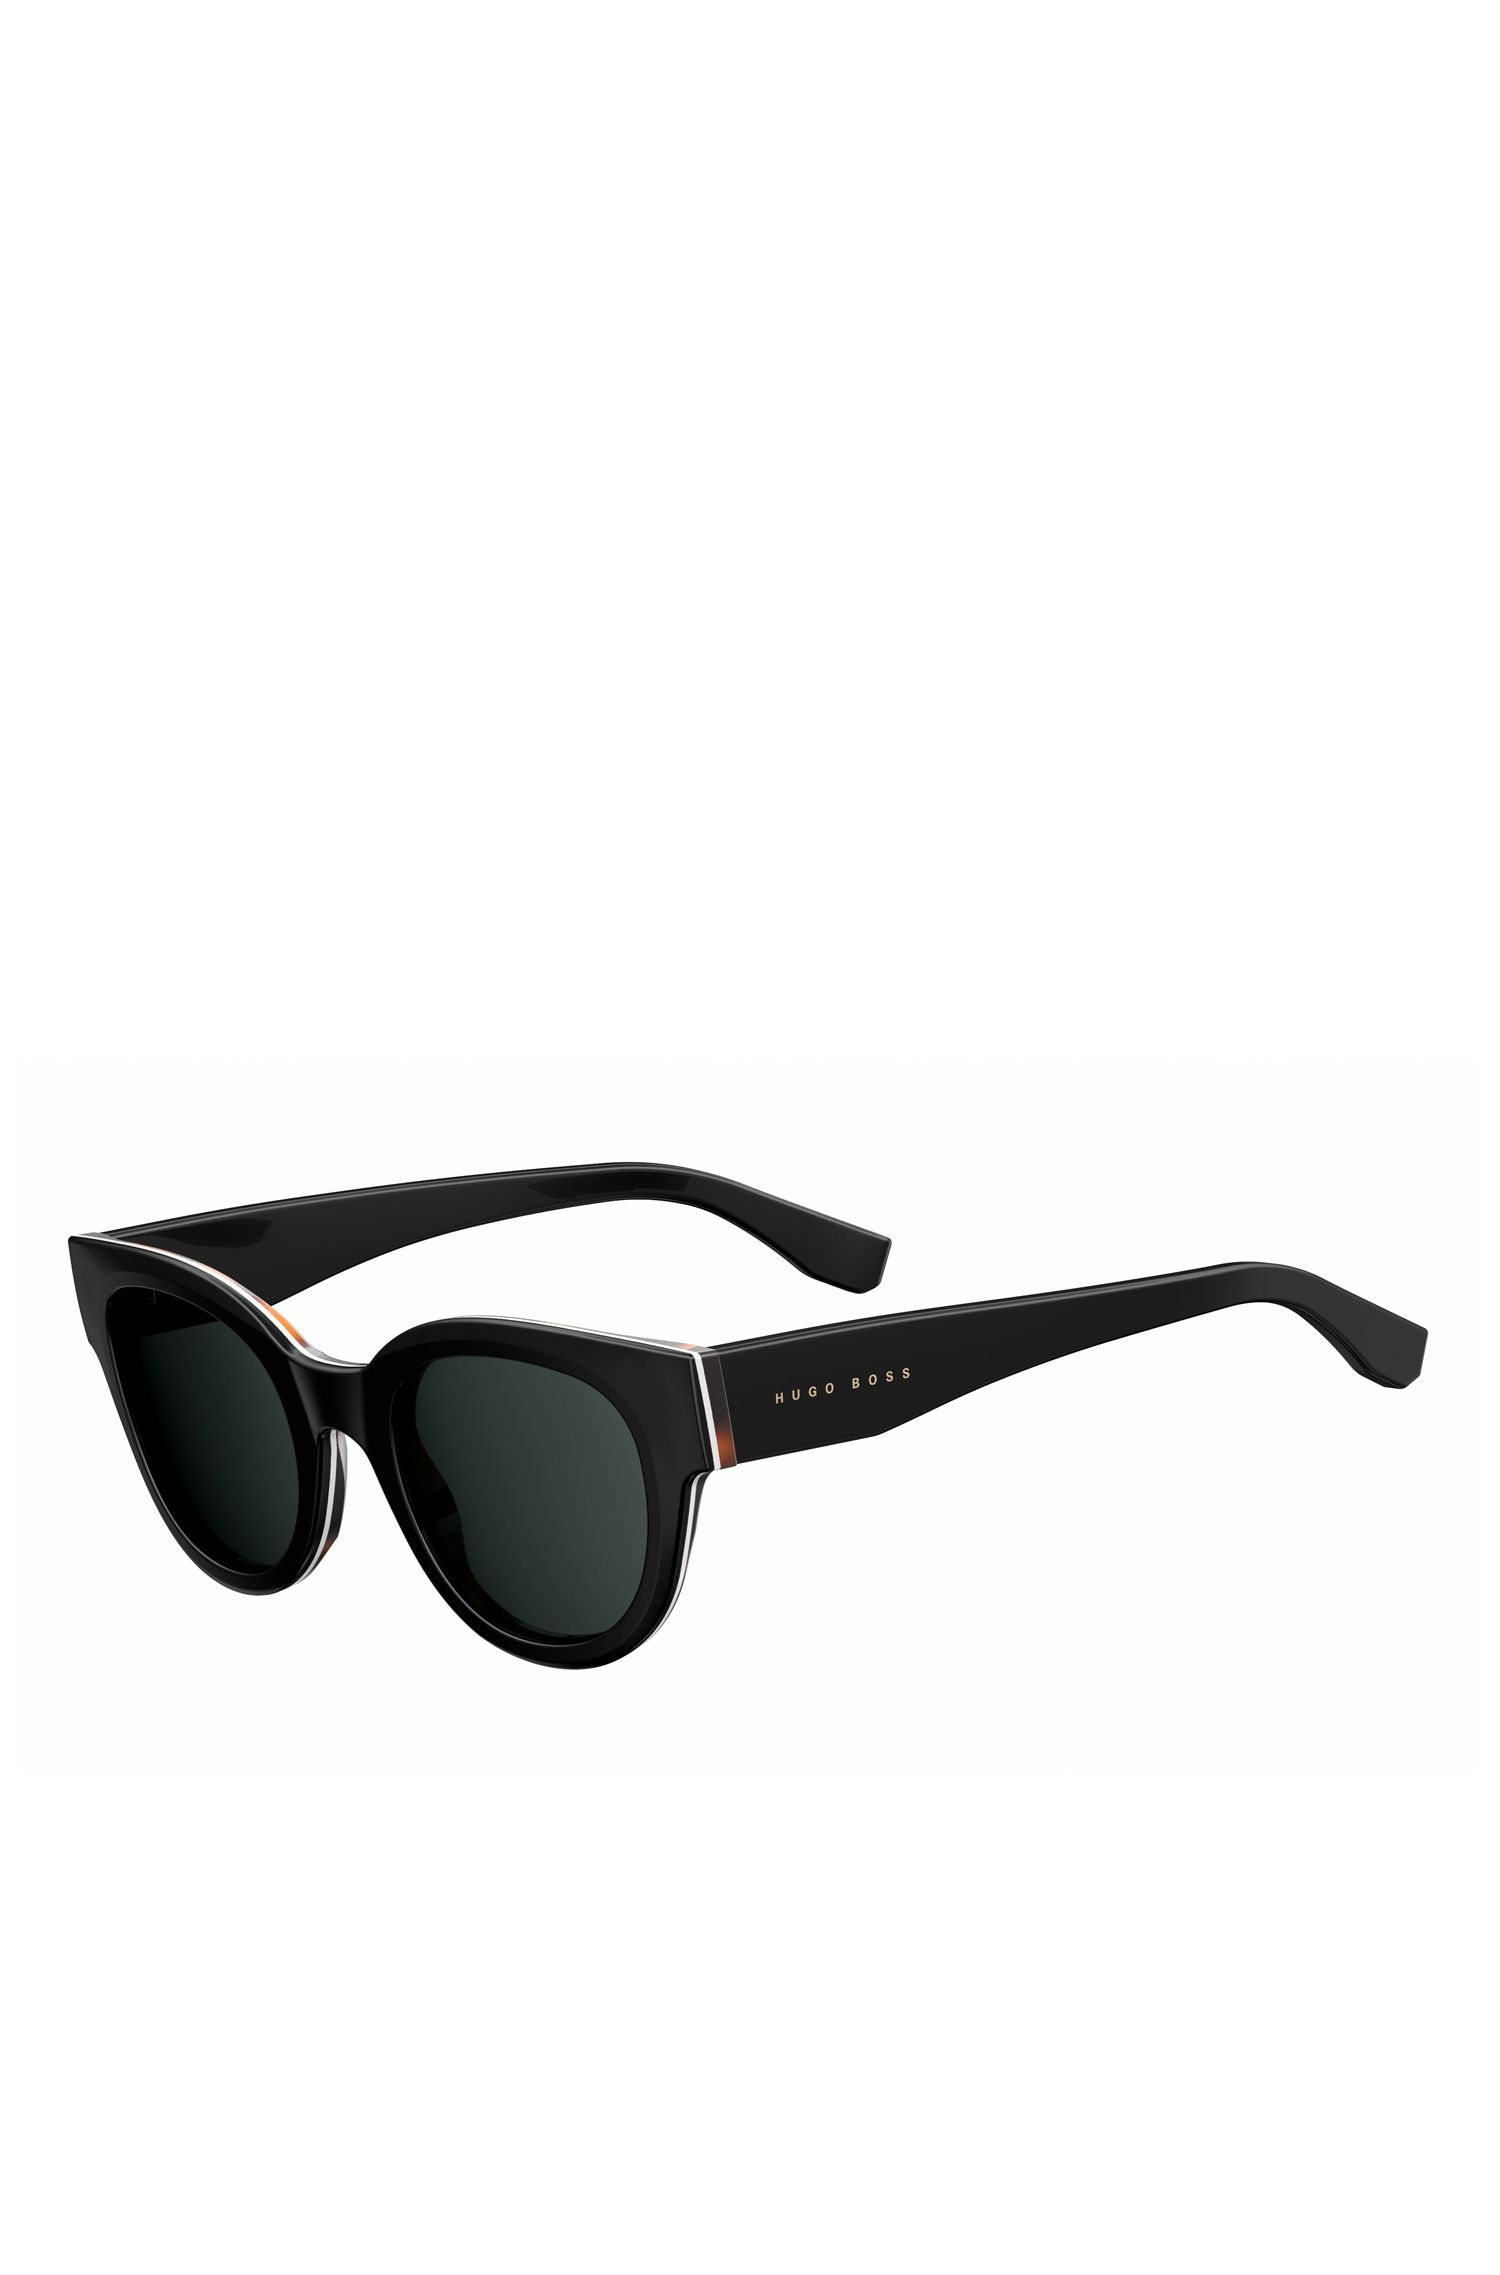 Black Lens Block Cat Eye Sunglasses | BOSS 0888S